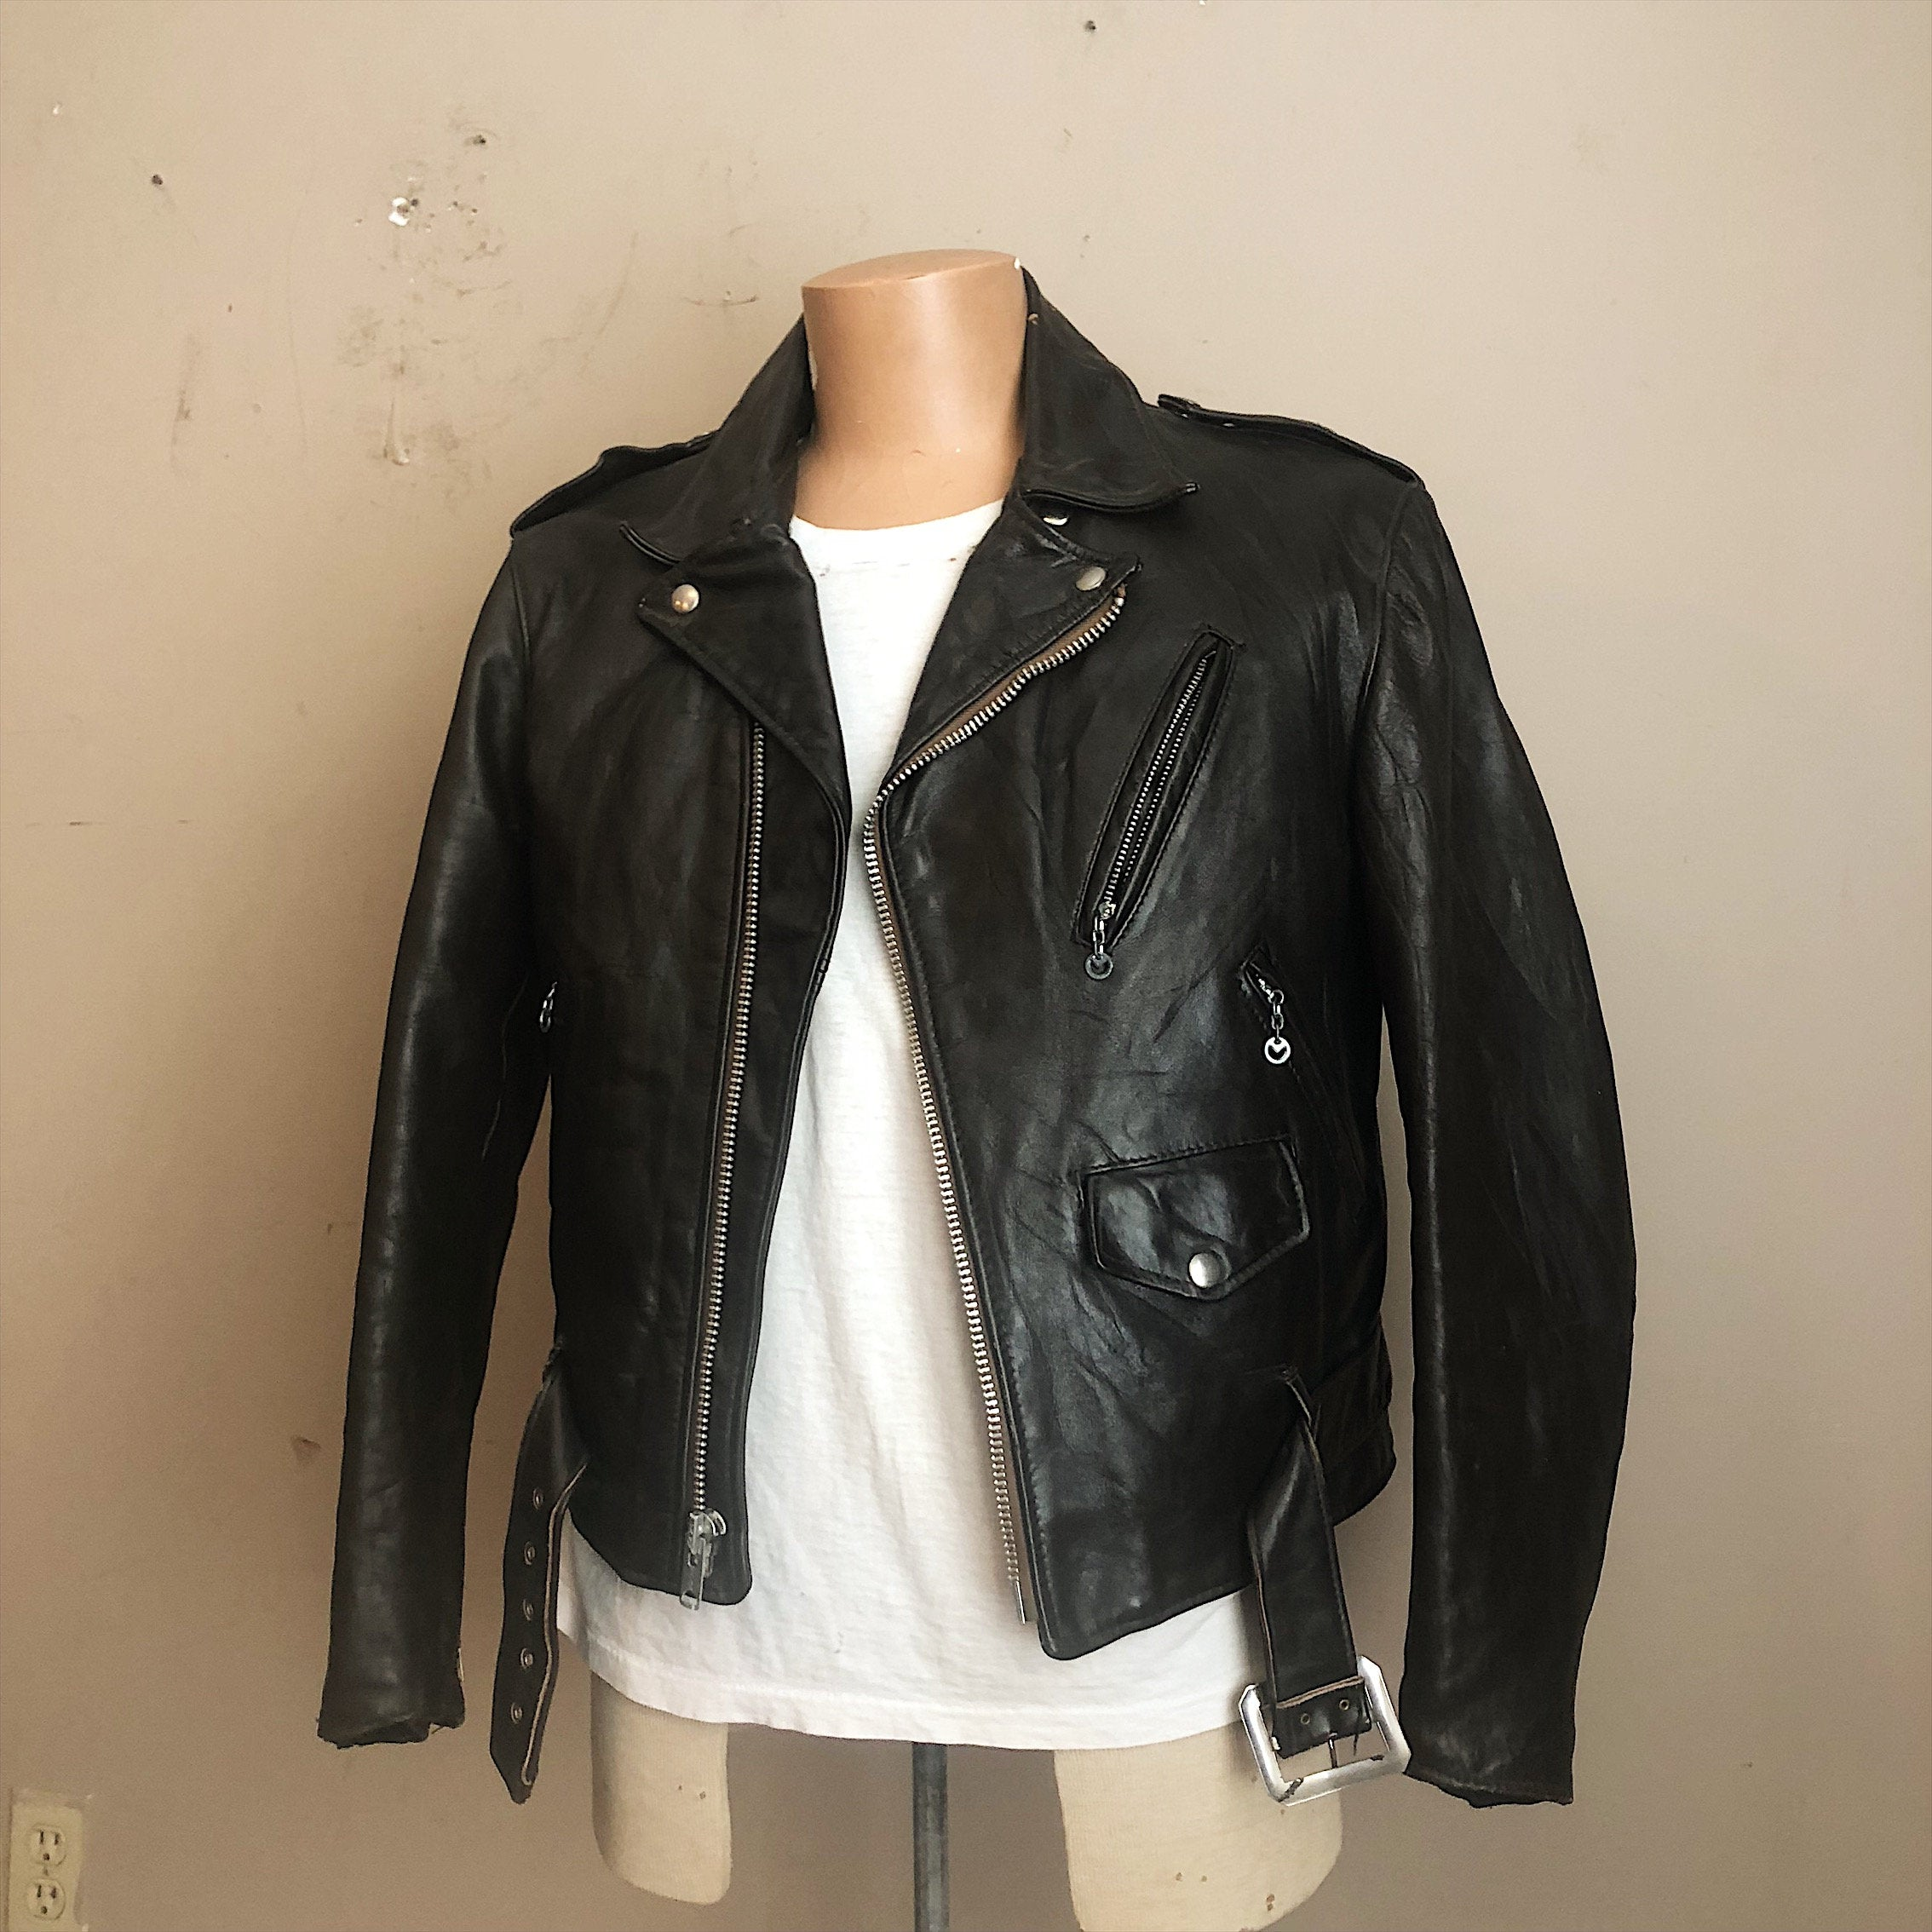 Vintage Schott Perfecto Motorcycle Jacket with Belt - One Star - Size 44 - 1970s Leather - Talon Zipper - The Ramones - Biker -The Wild Ones